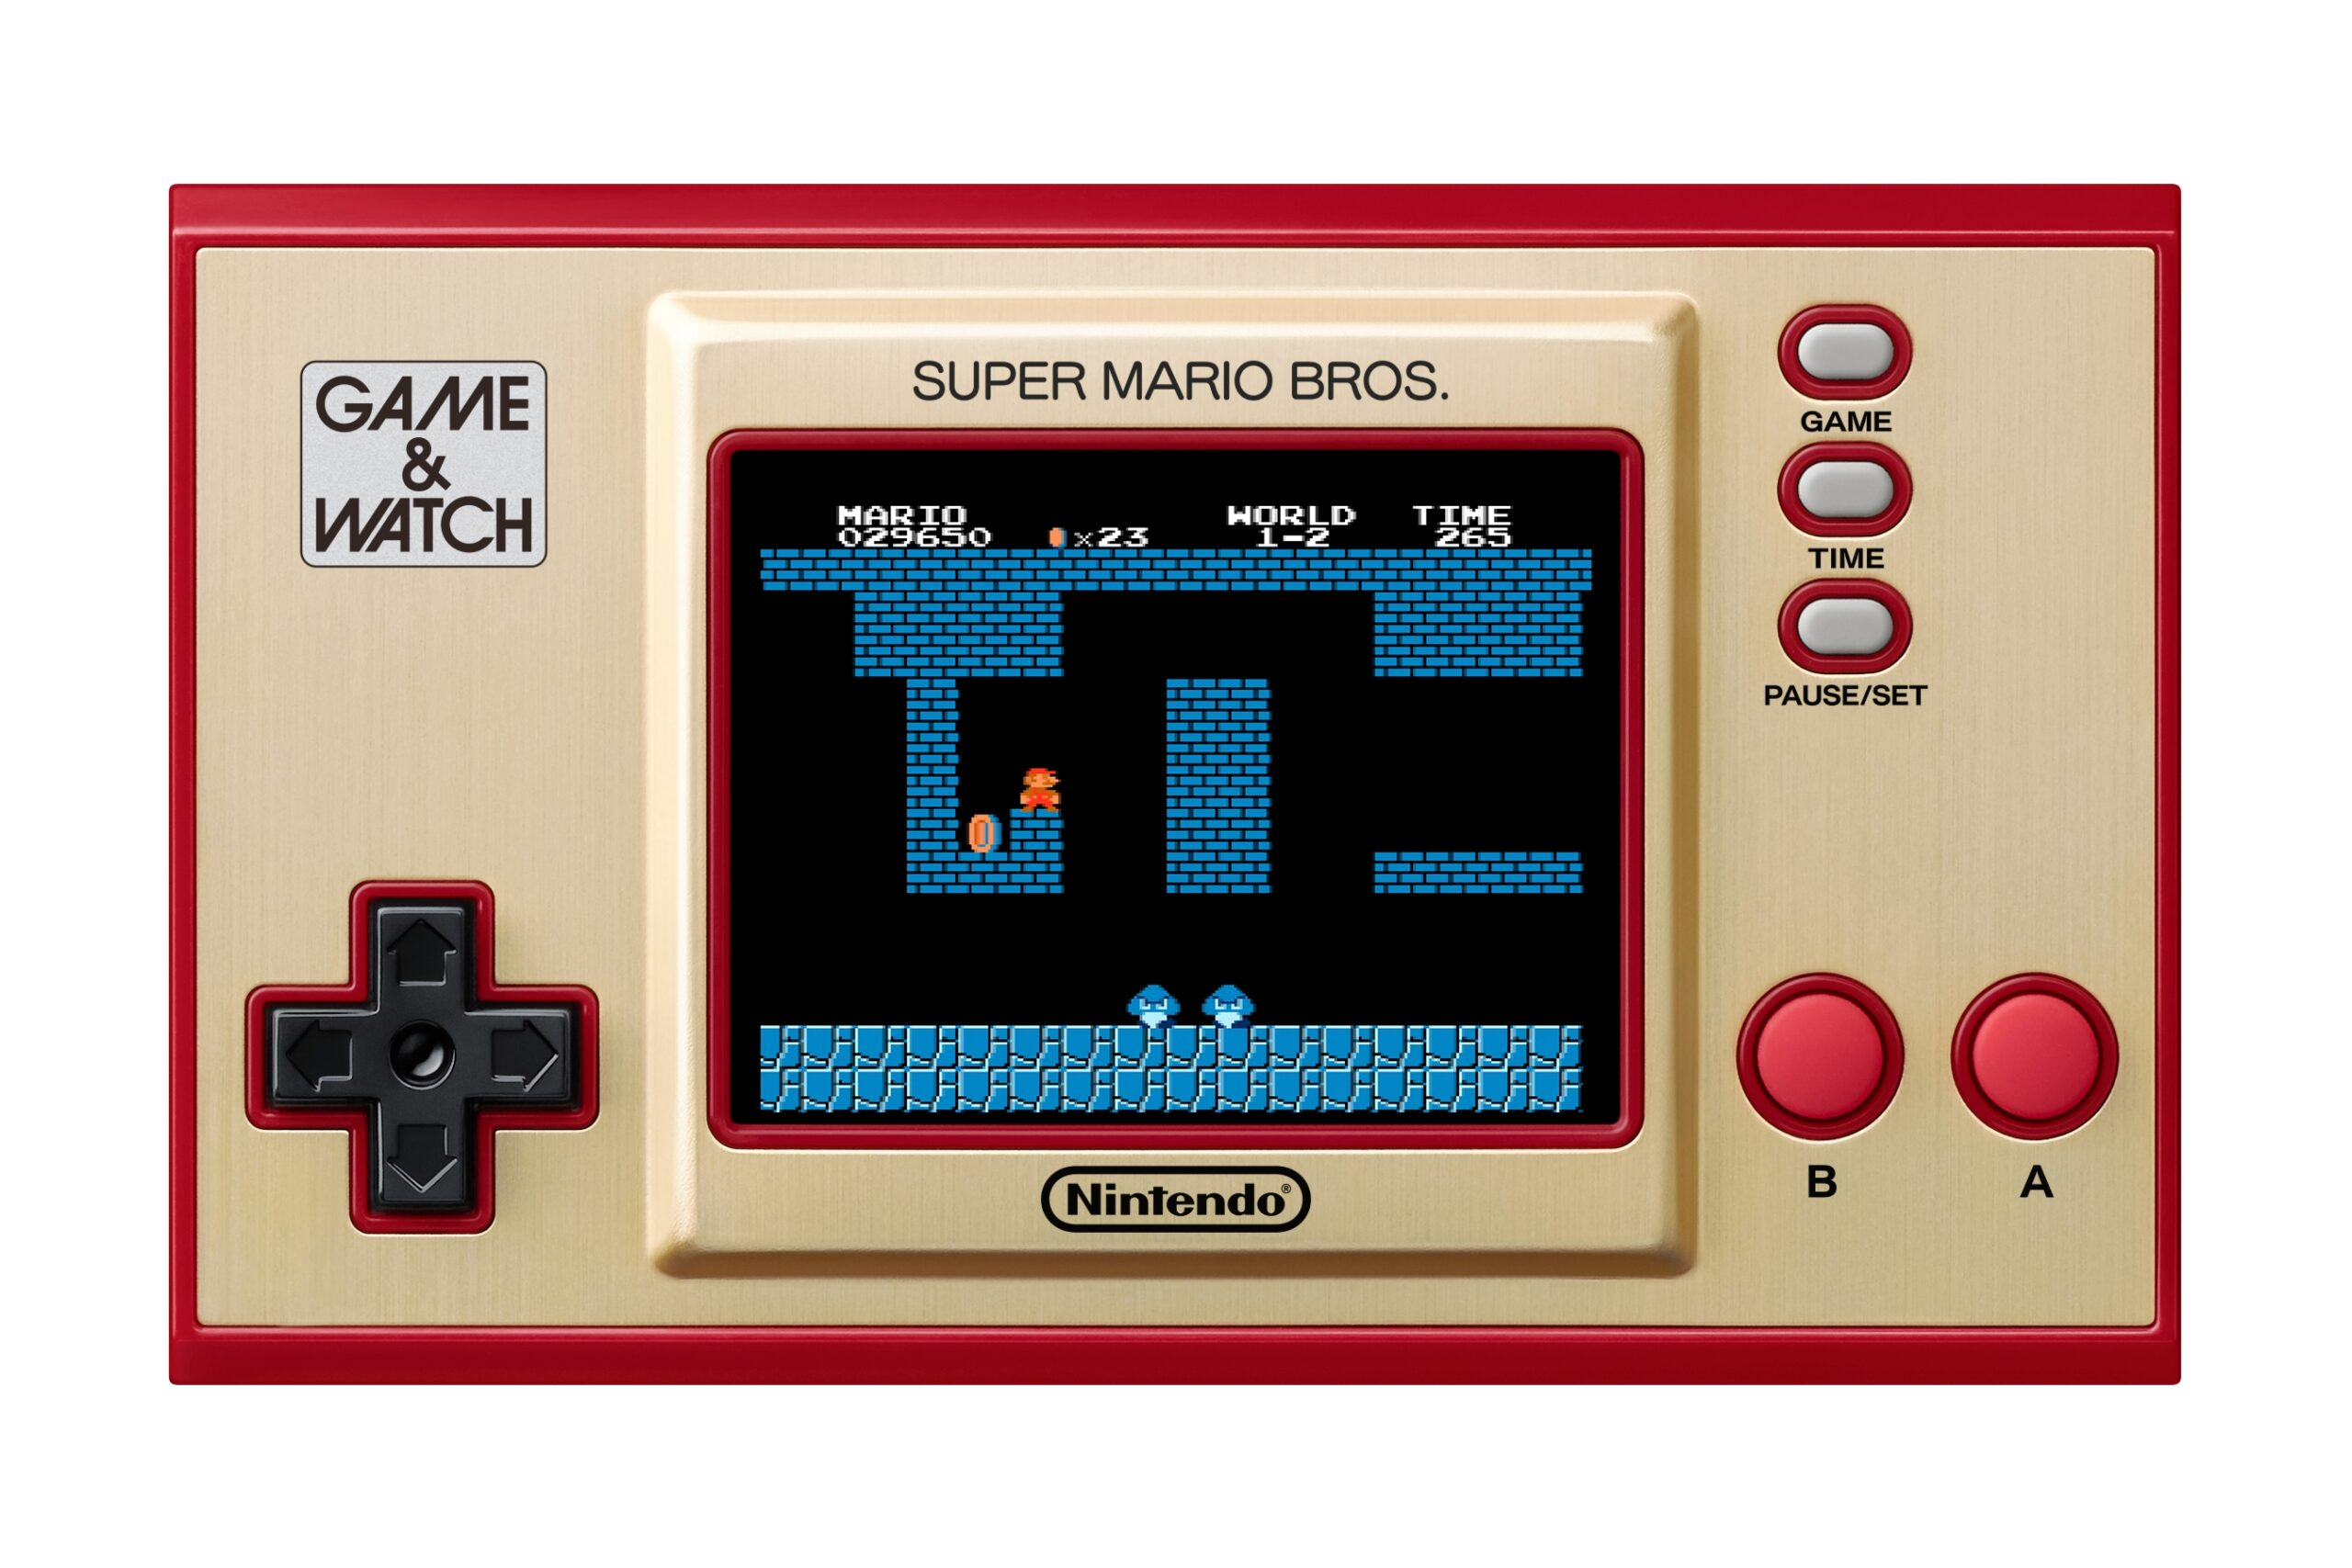 Game-and-Watch-Super-Mario-Bros_2020_09-03-20_007